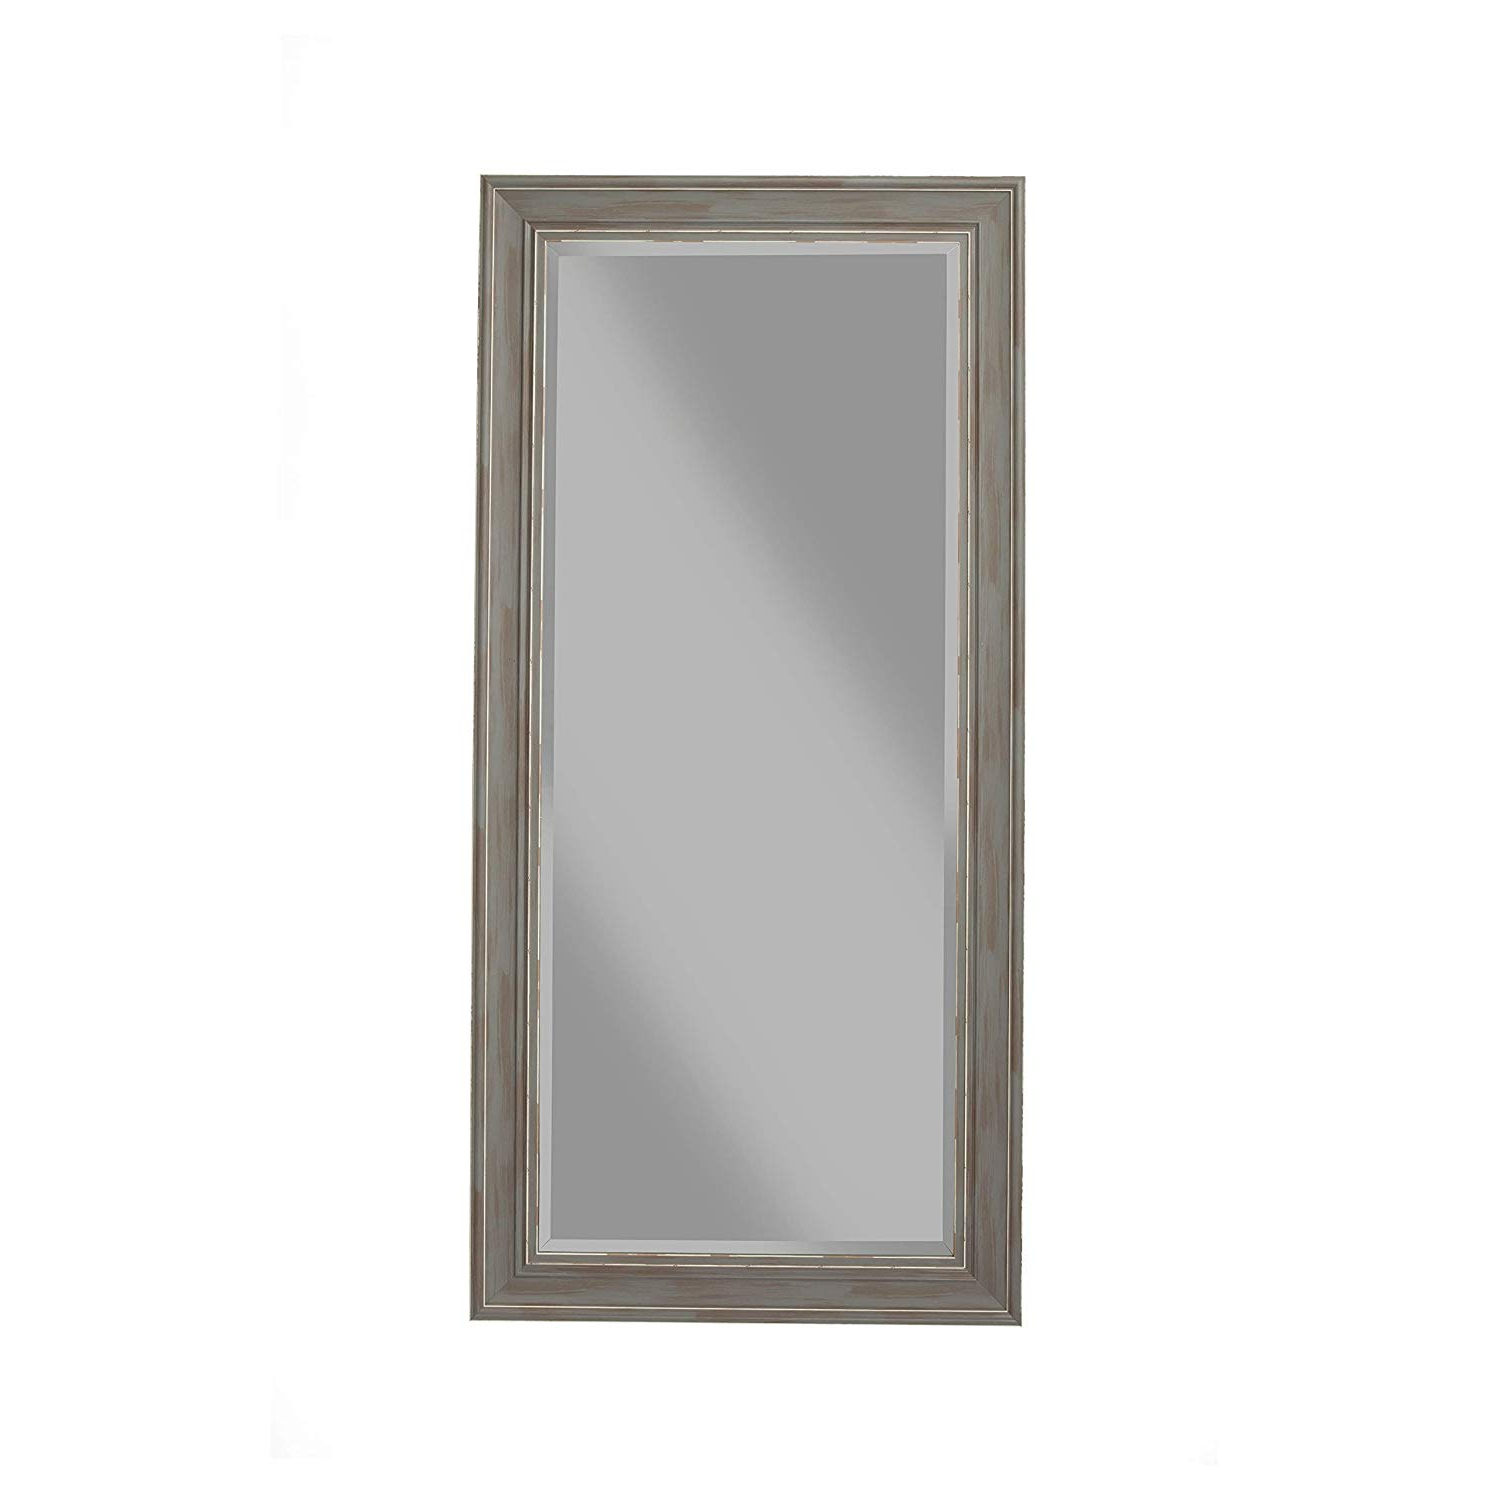 Amazon: Benzara Bm178074 Full Length Leaner Mirror With Within Current Rectangle Antique Galvanized Metal Accent Mirrors (View 4 of 20)